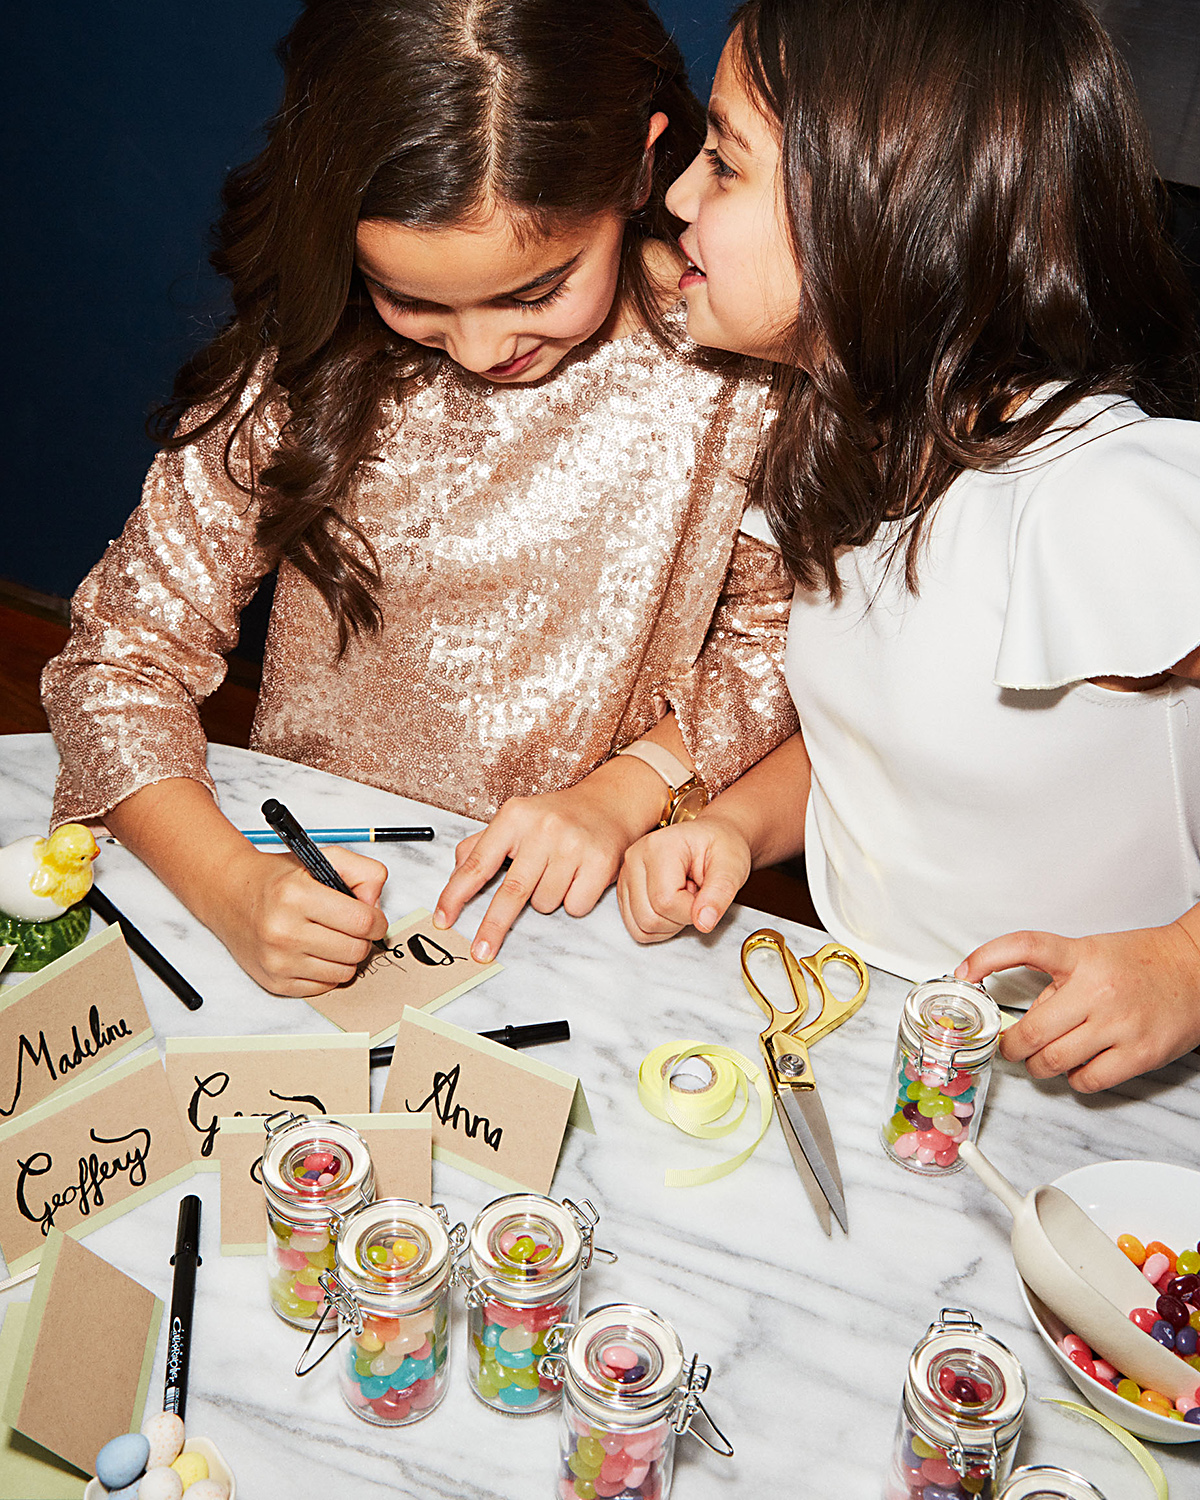 Girl's whispering and making name tags